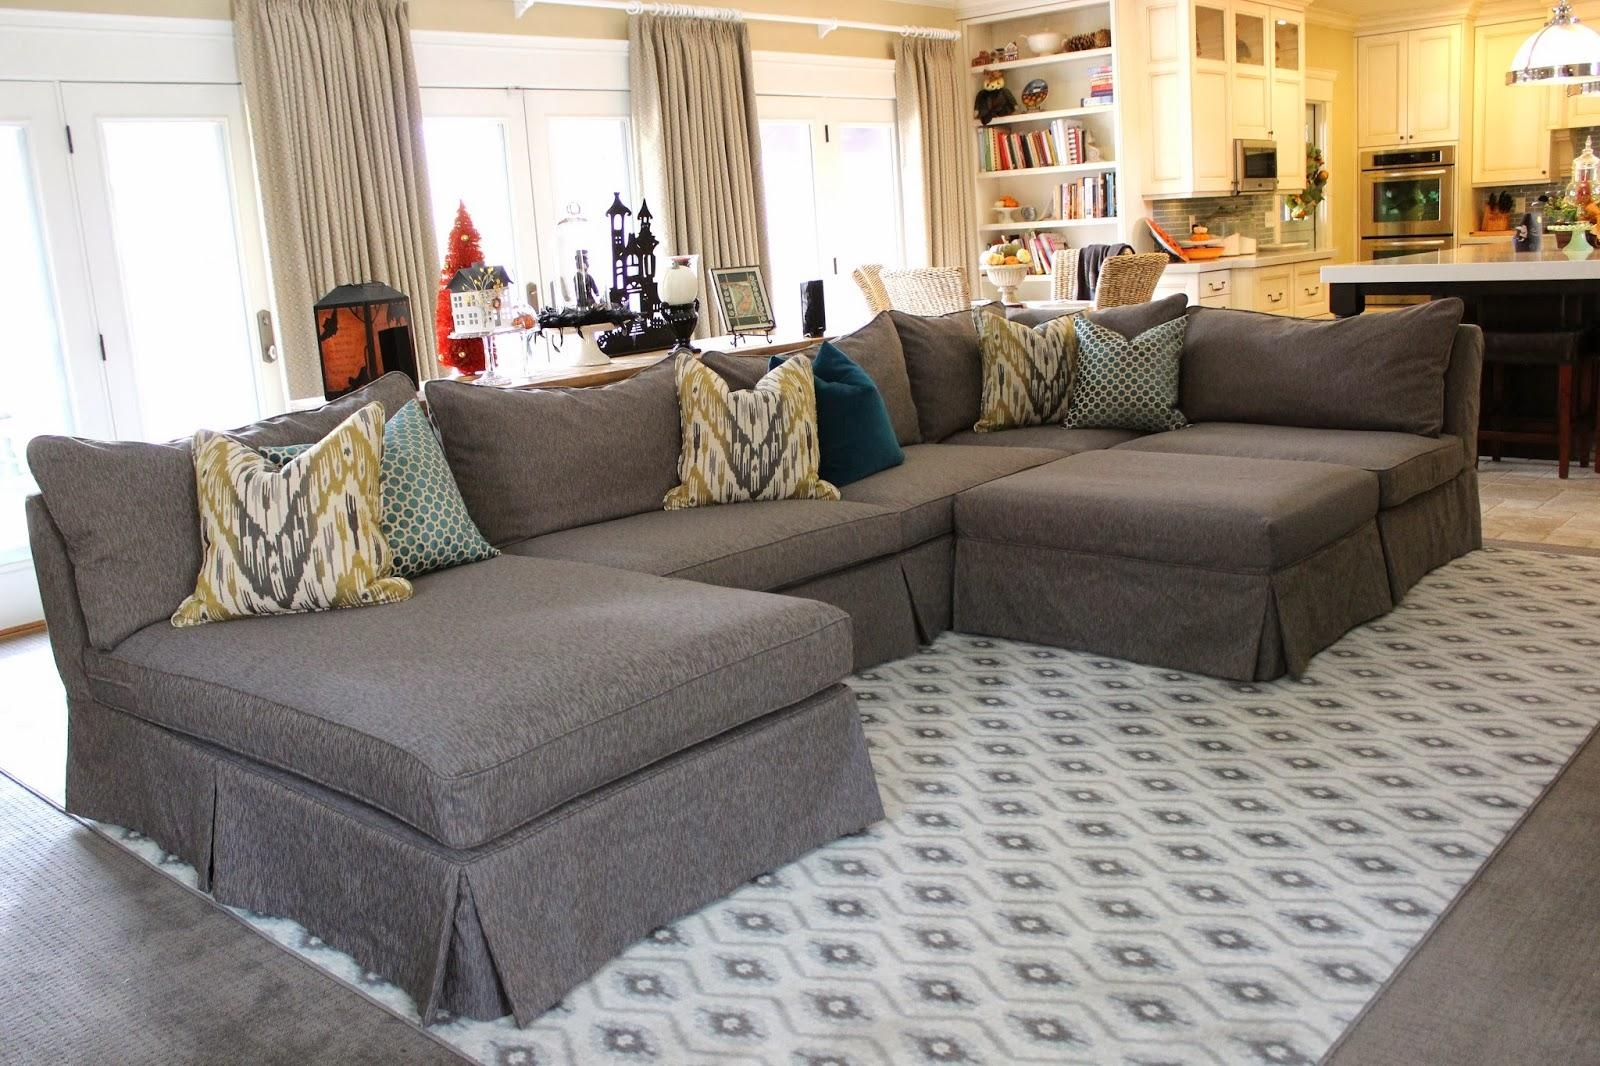 Brilliant Grey Sectional Couches N Intended Design Ideas Inside Sectional Sofa Ideas (Image 9 of 20)